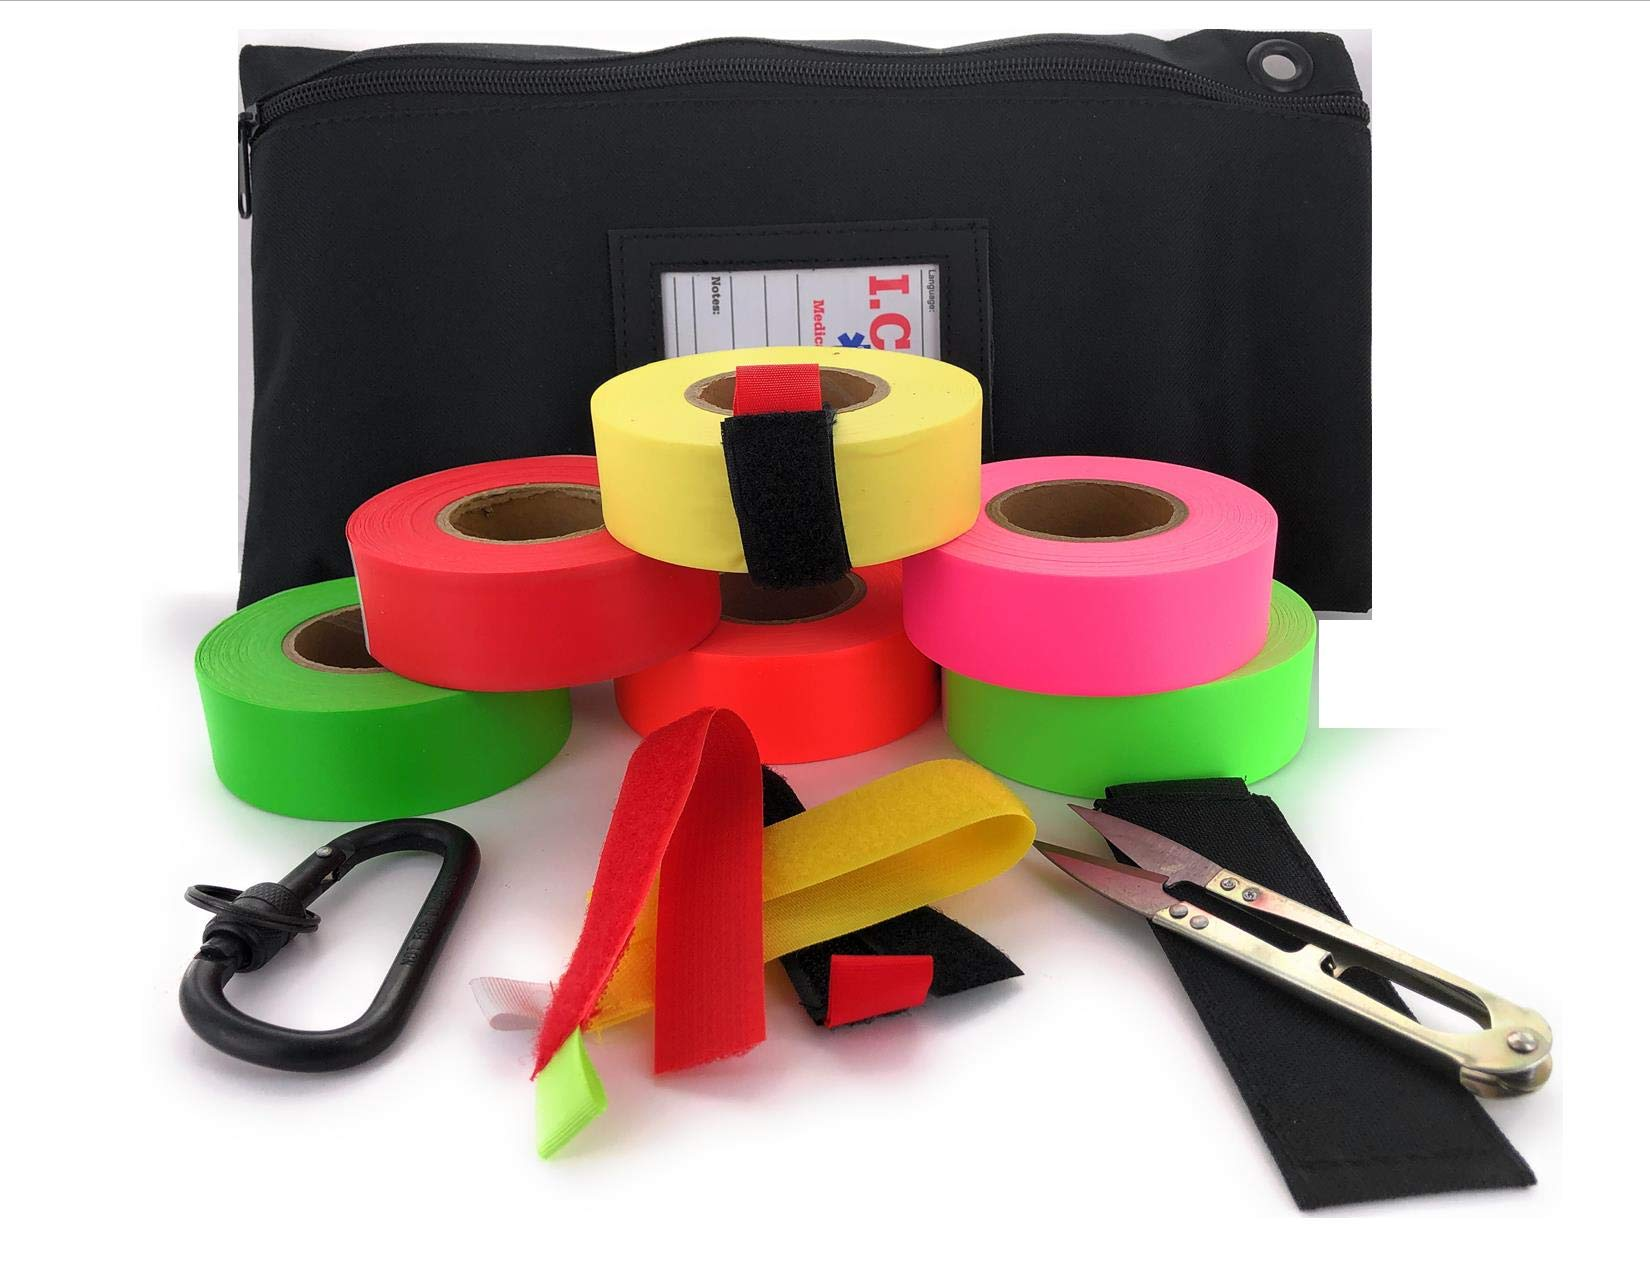 VAS HIGH Visibility Rainbow Trail Marking & Flagging Ribbon DLX Tape Trail Pack- Outdoor, Commercial & Industrial Use Organizer Utility Bag Scissors & Case Retention Strap (1 Each Color, 6 Pack)